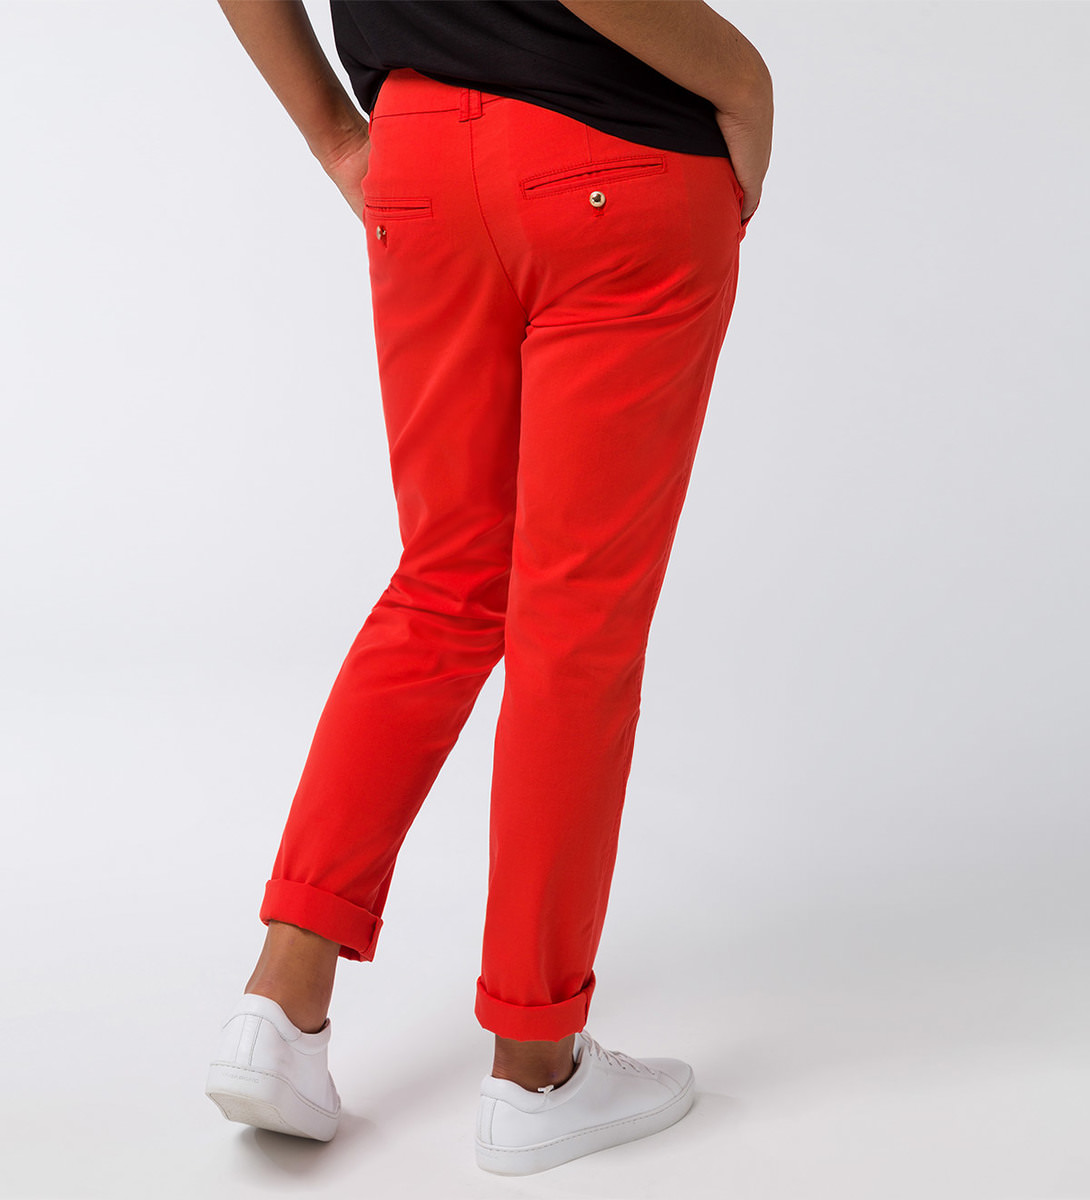 Chino 32 Inch in orange red